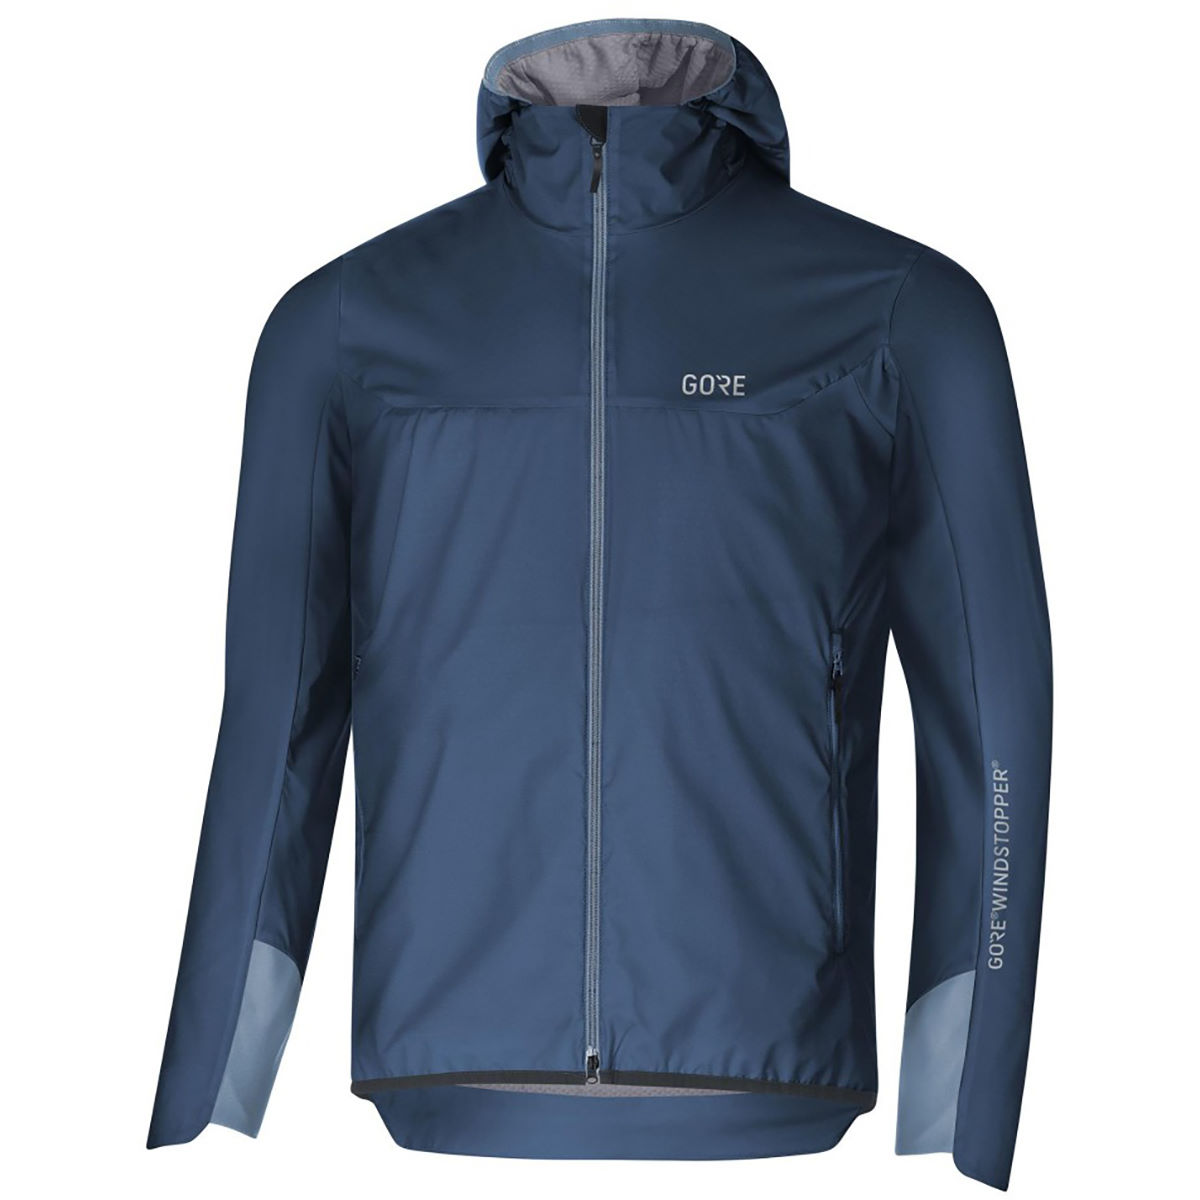 Gore Gore H5 GWS Insulated Hooded Jacket   Jackets